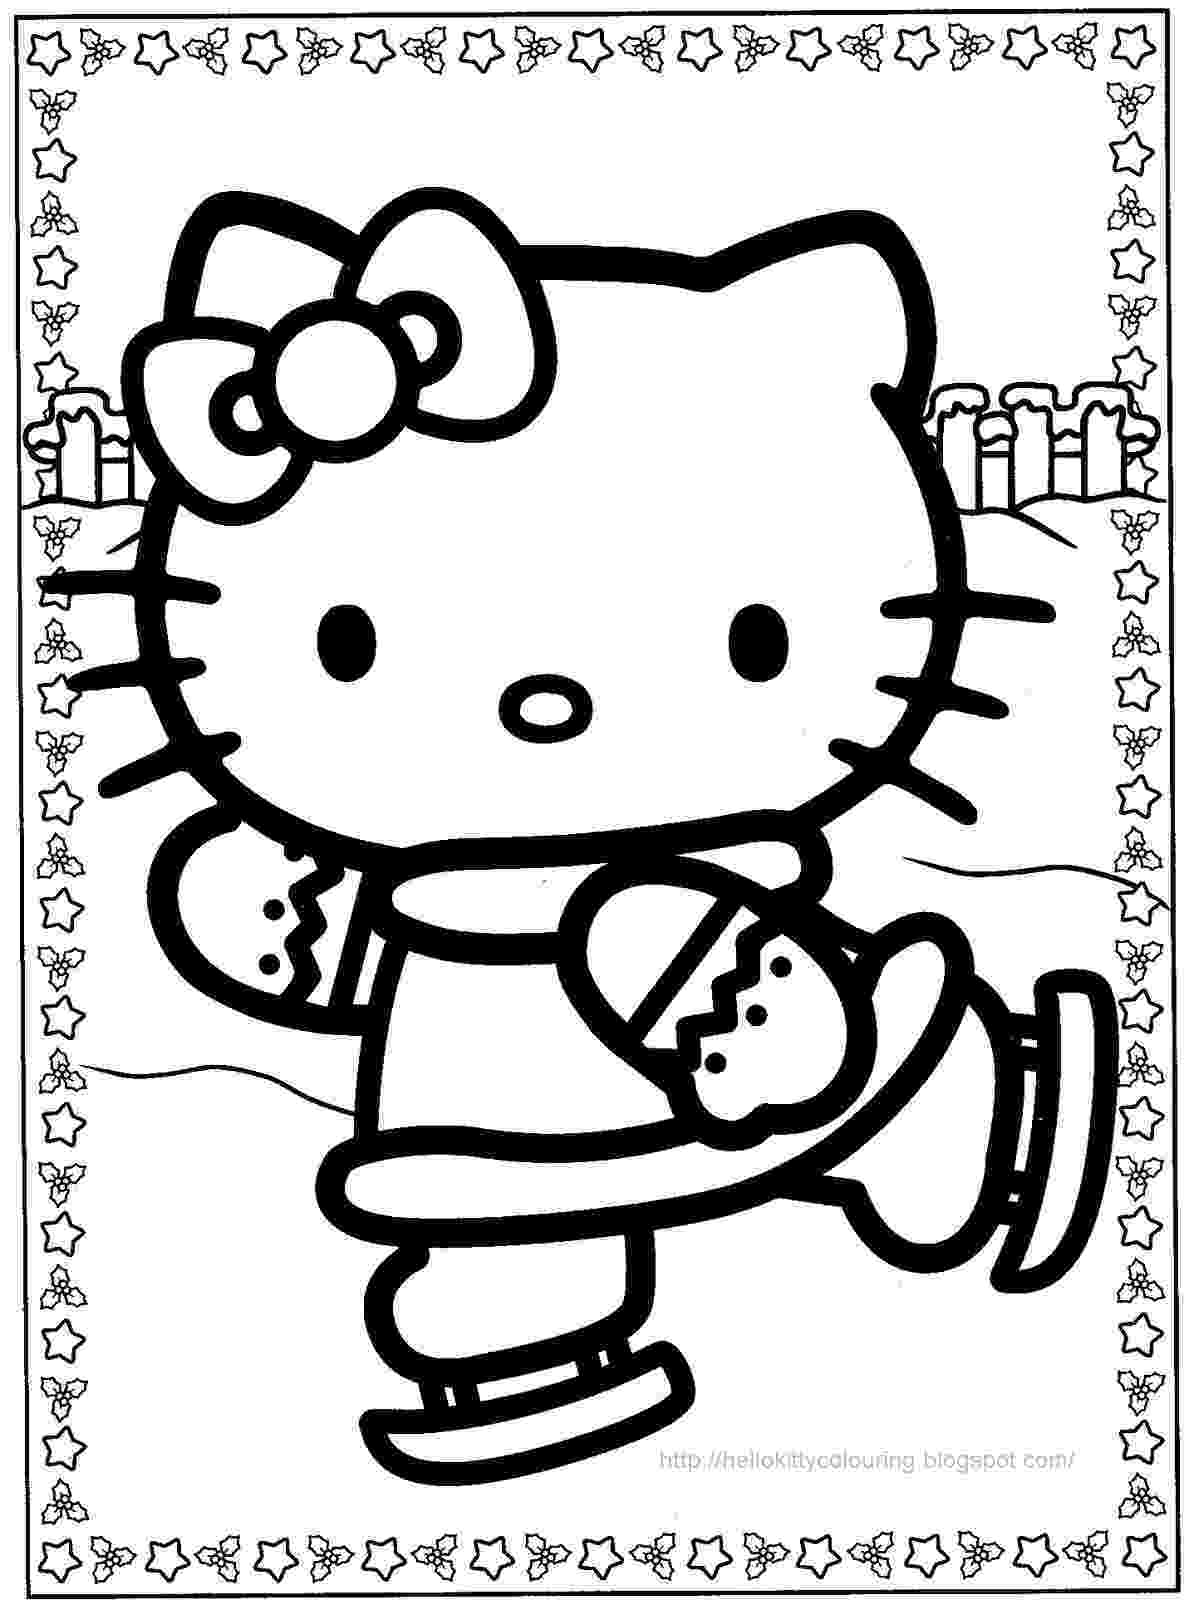 hello kitty christmas coloring pages free print christmas hello kitty coloring pages for kids printable pages coloring christmas hello free kitty print